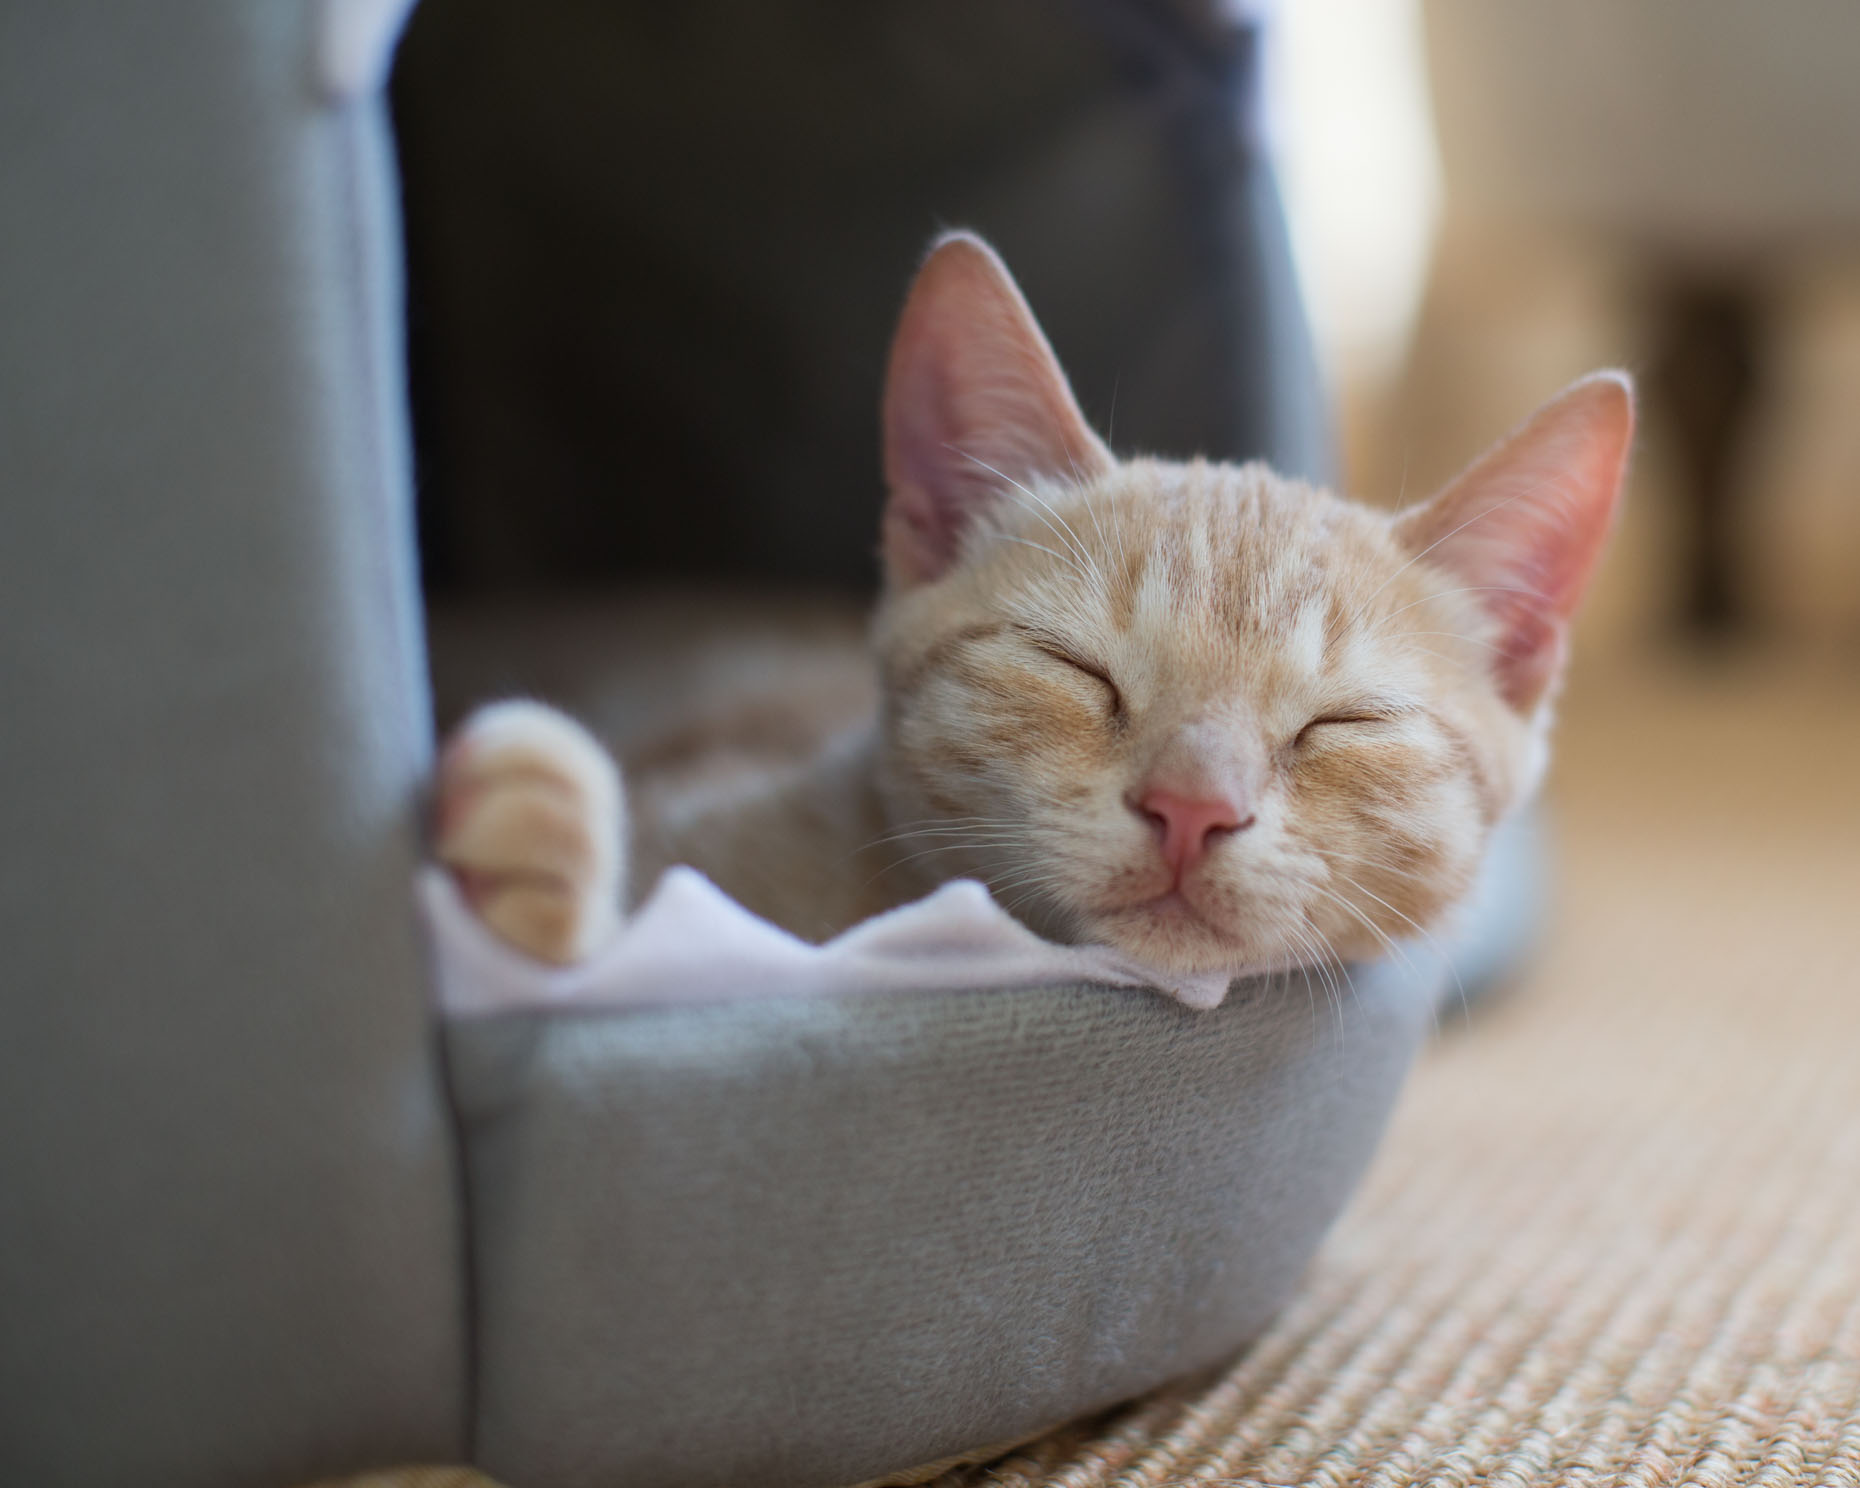 Cat Photography | Kitten Sleeping by Mark Rogers